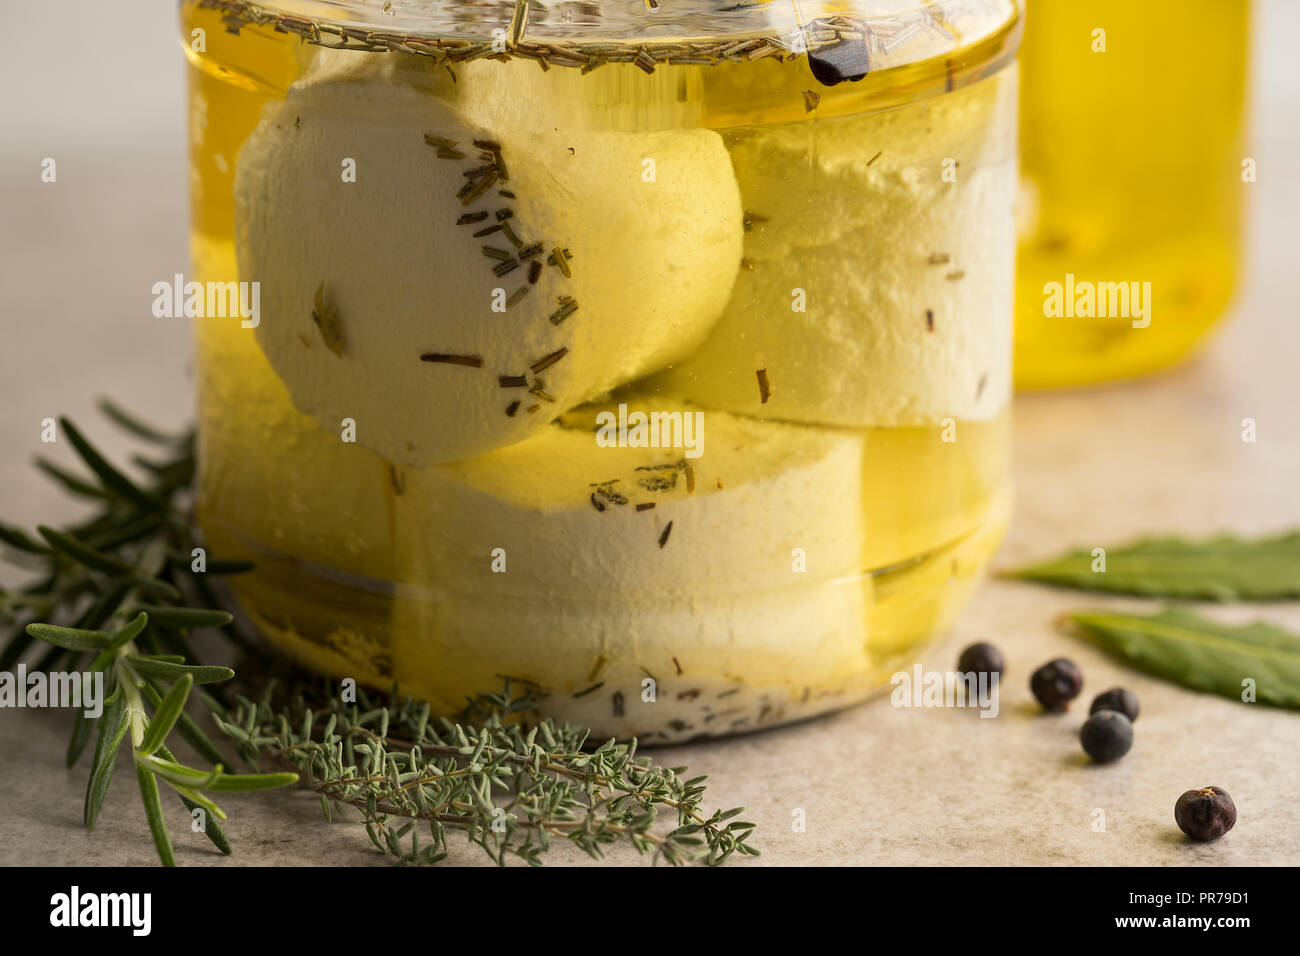 Glass jar with preserved white organic Dutch goat cheese and fresh herbs close up - Stock Image